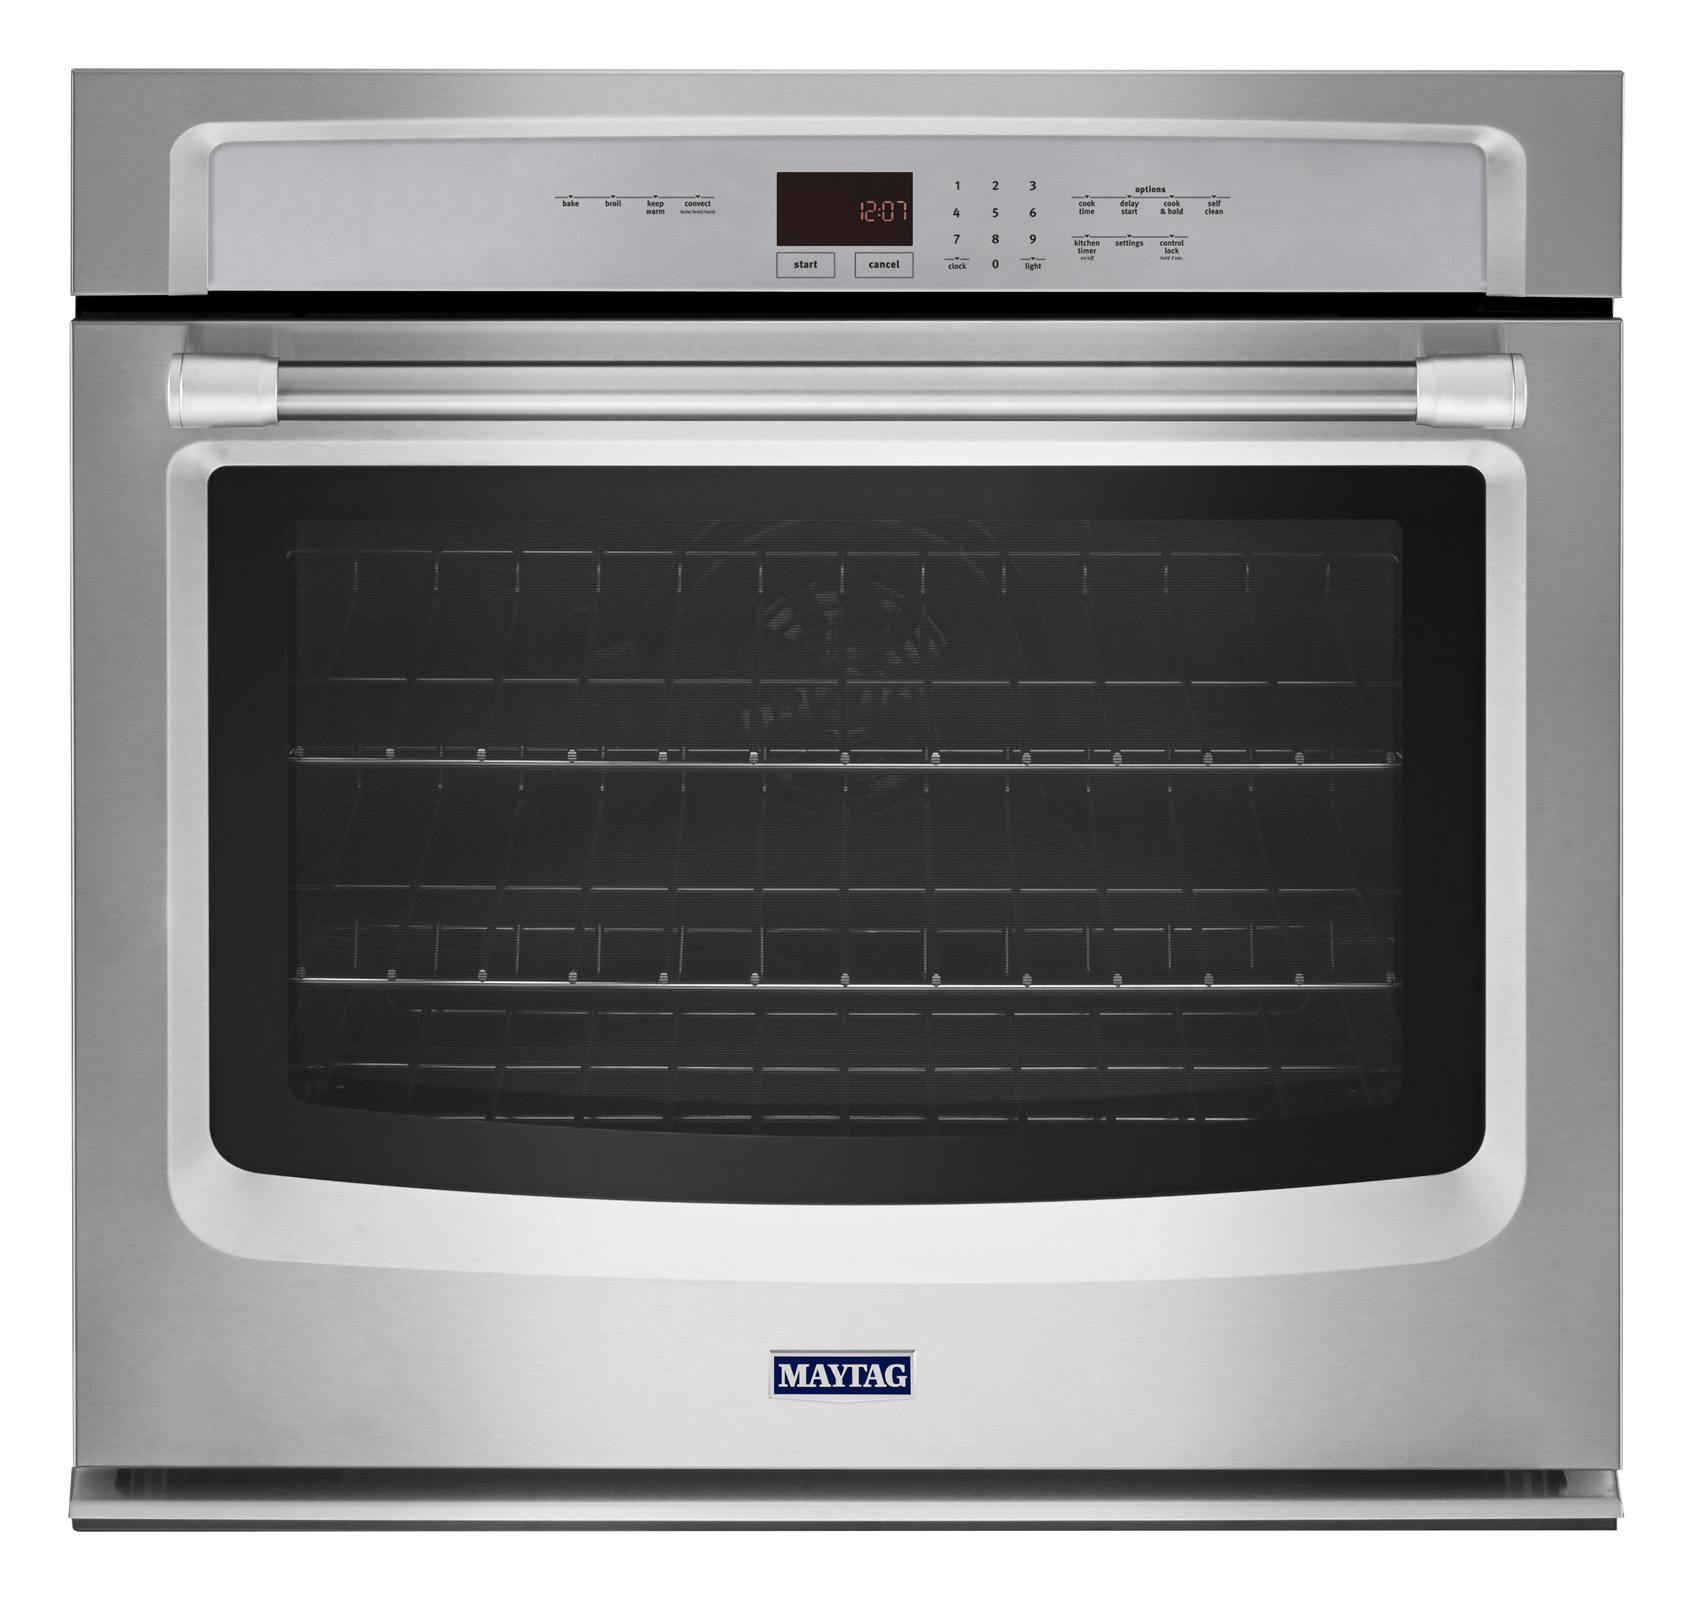 Maytag MEW9527DS 27 Electric Wall Oven w/ EvenAir™ True Convection - Stainless Steel